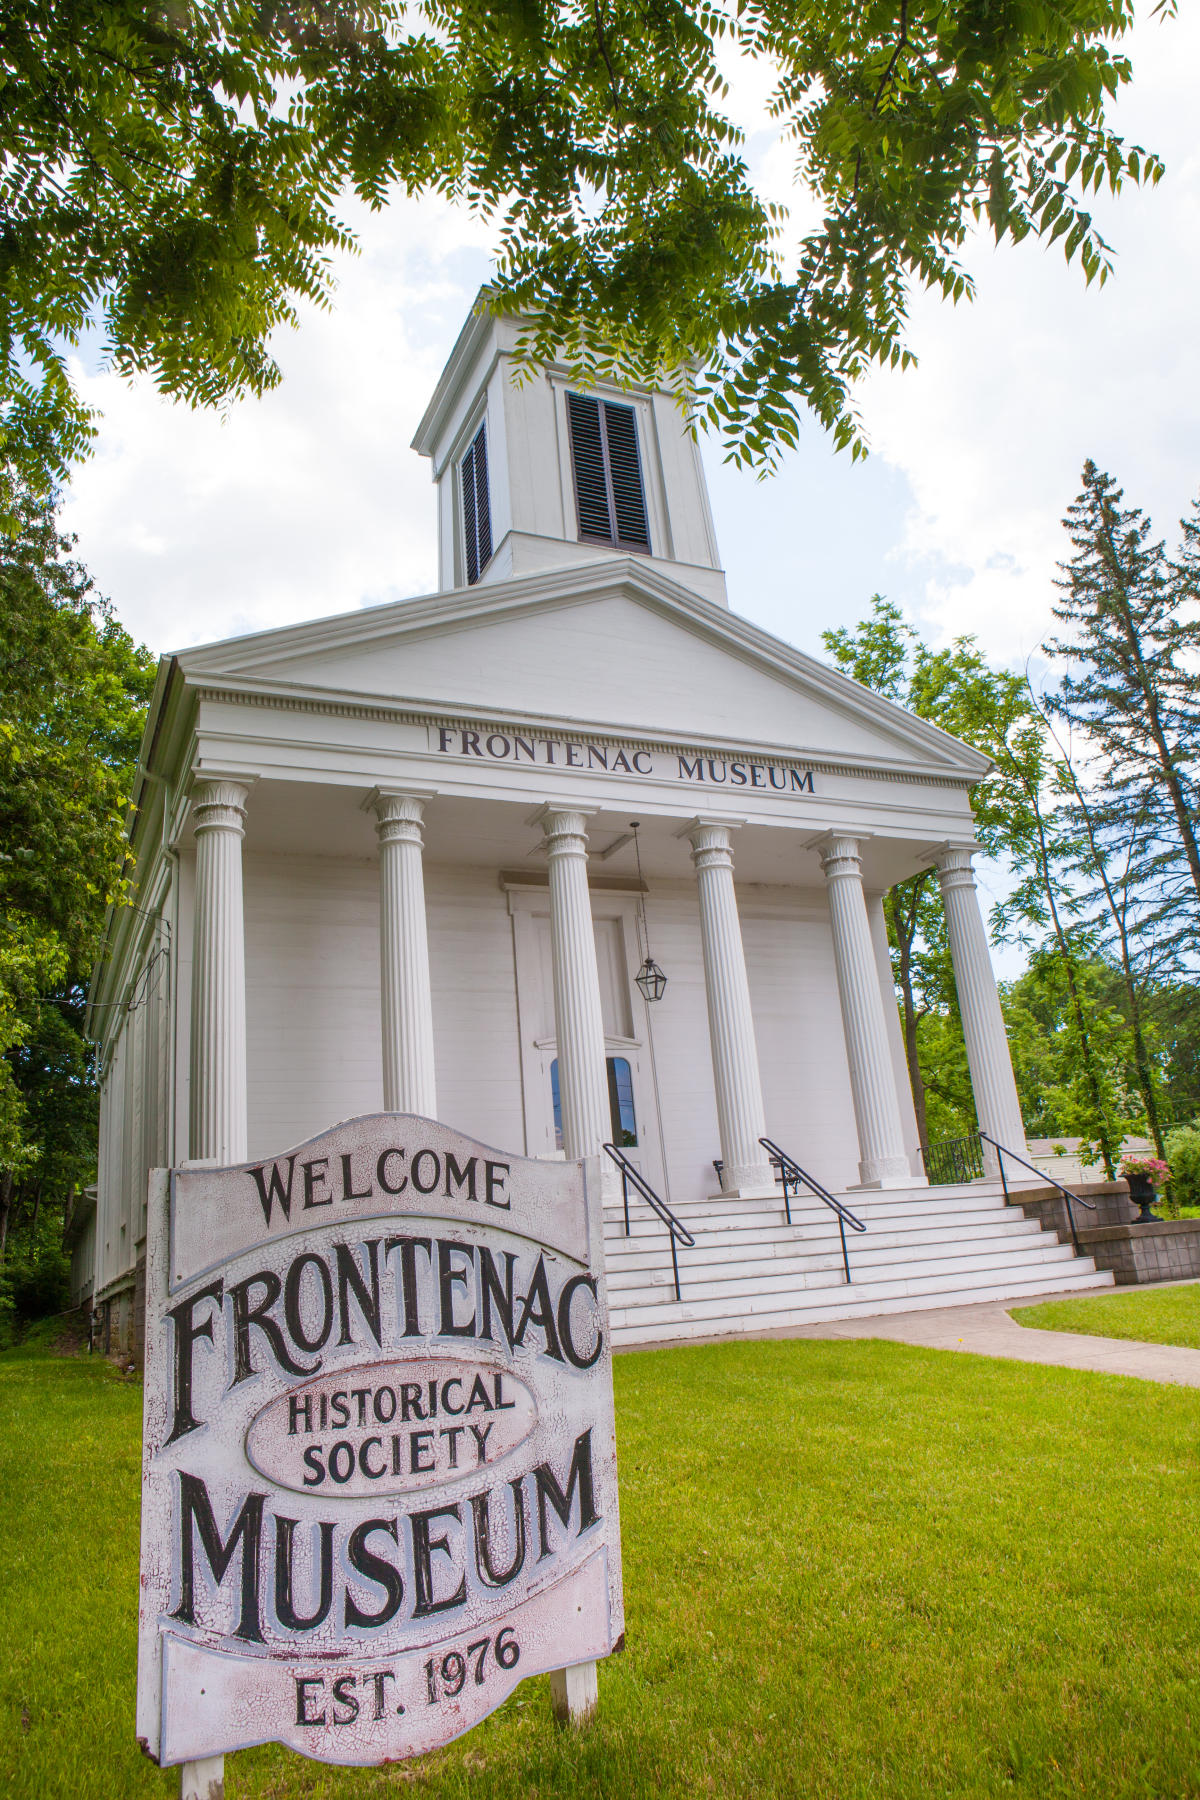 The Frontenac Historical Society & Museum is located in this historic Presbyterian church.